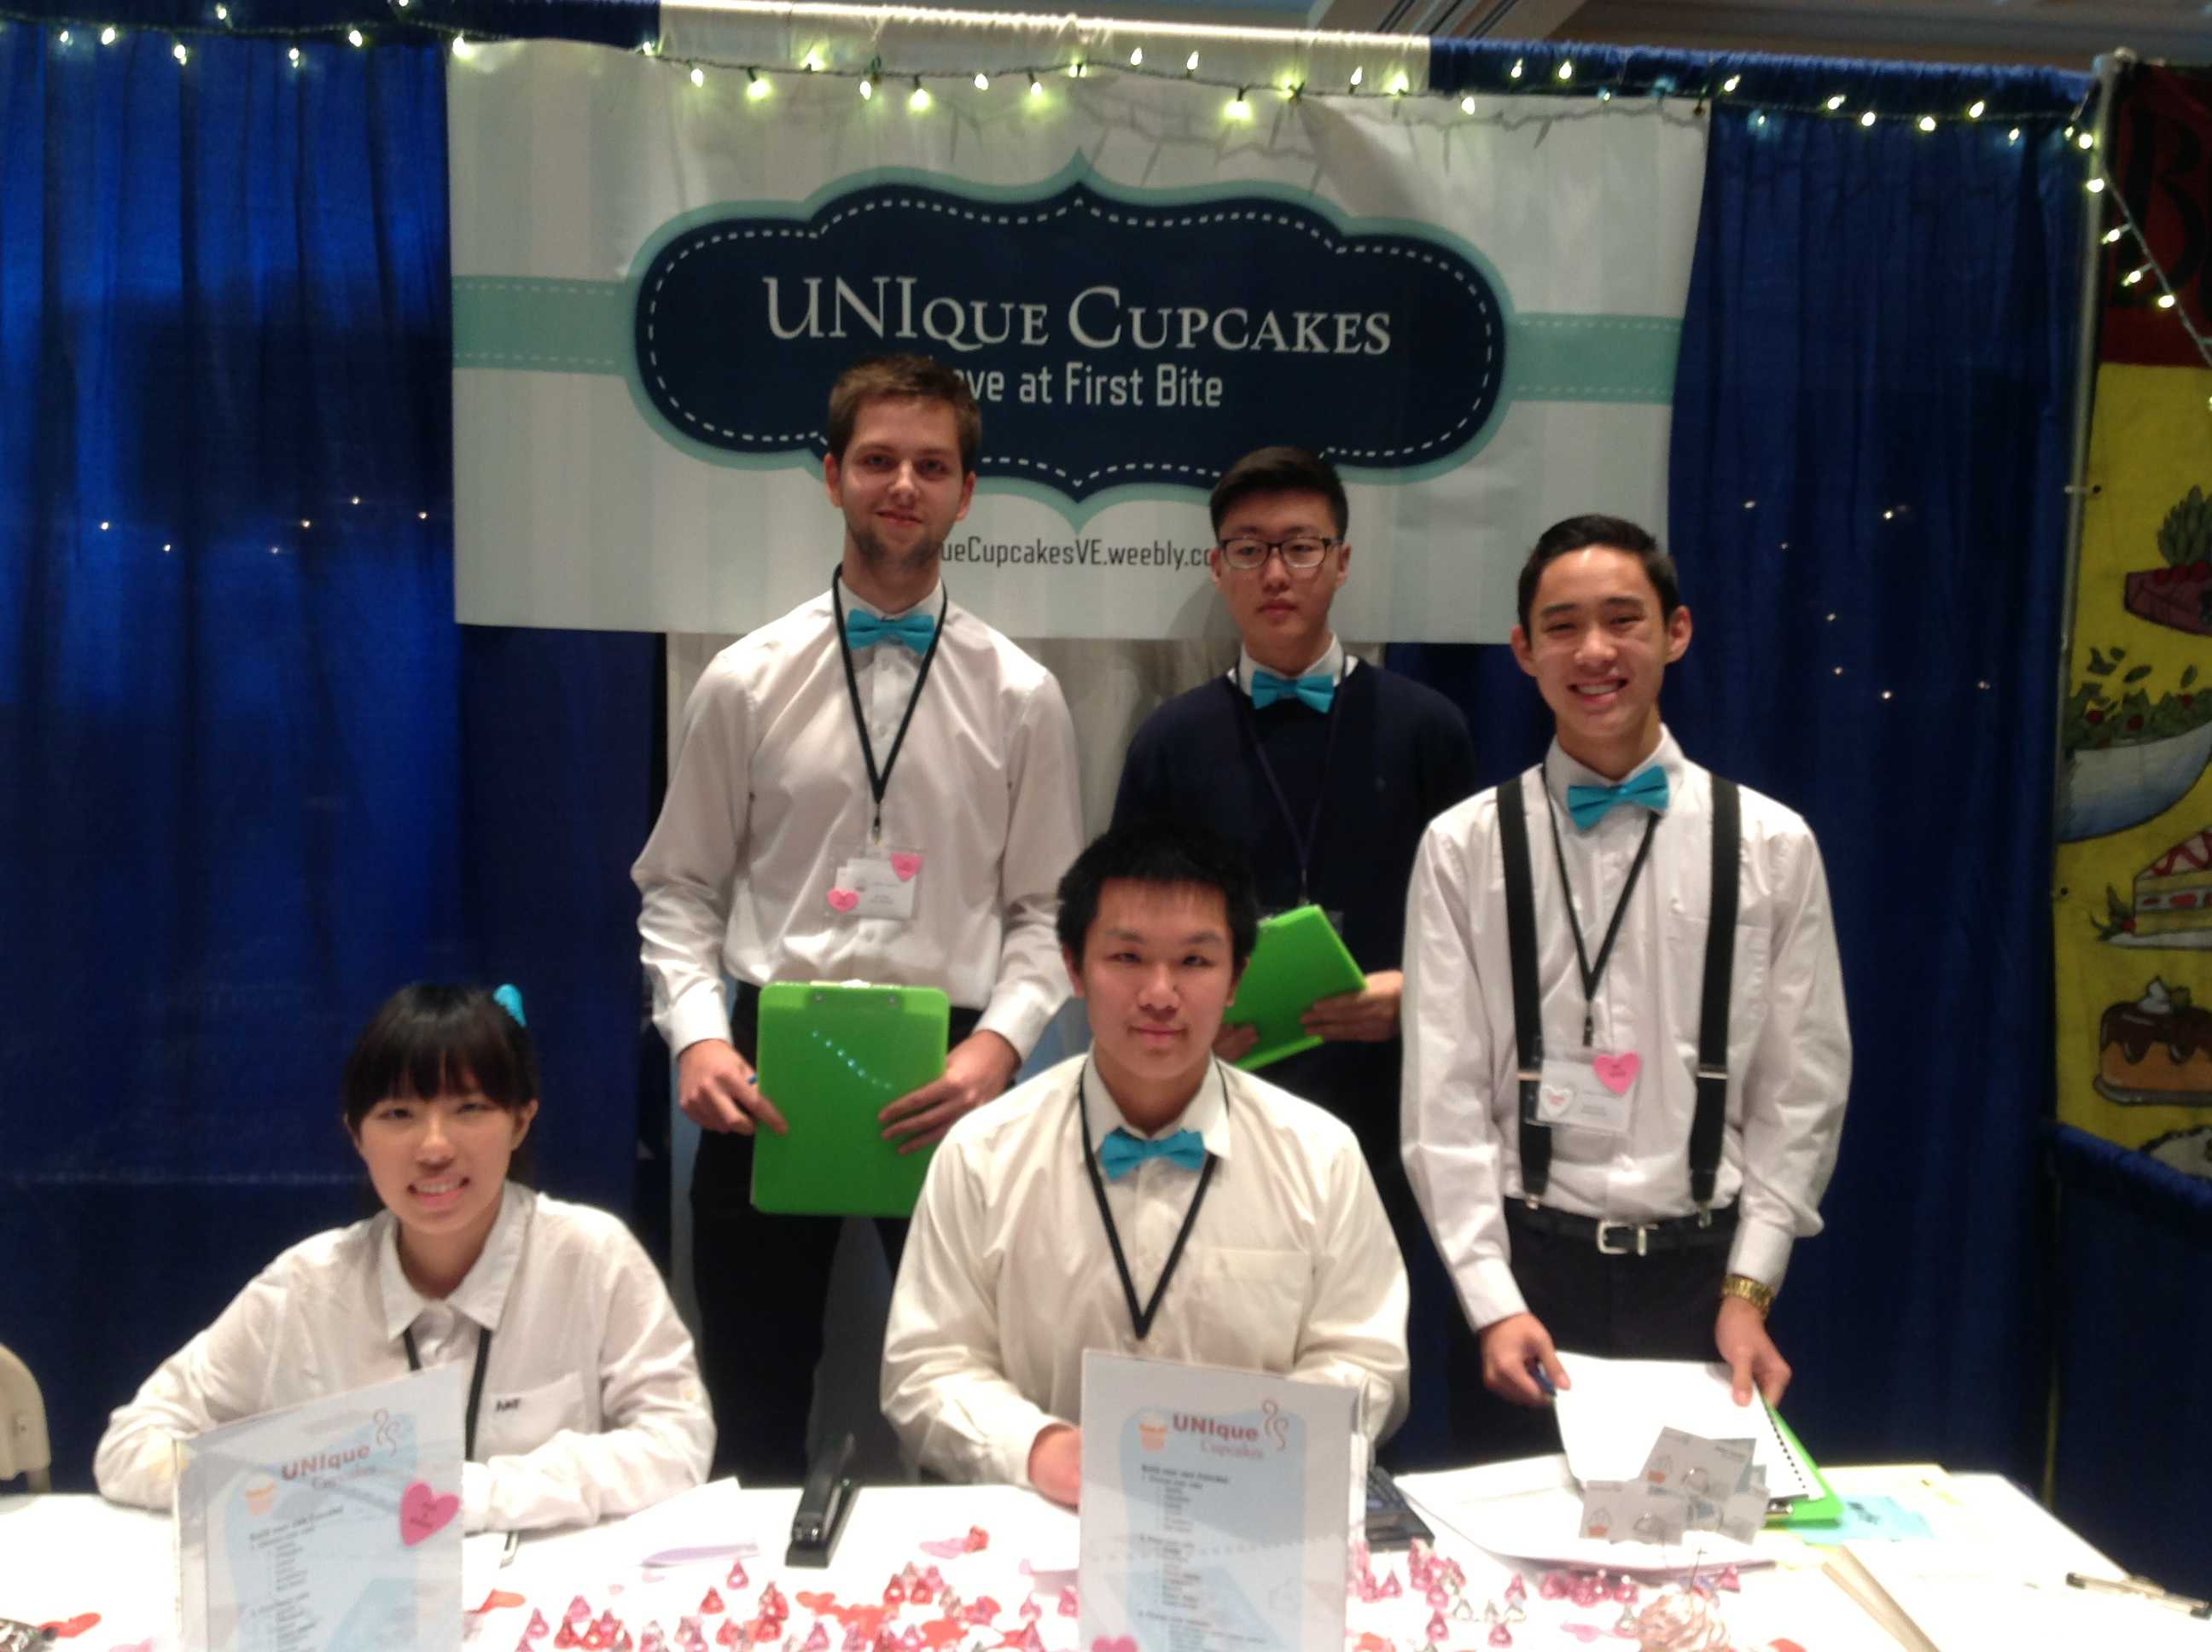 """UHS Virtual Enterprise team presents its business """"UNIque Cupcakes"""" at a Trade Show in Long Beach photo courtesy of Mrs. Nora Seager"""